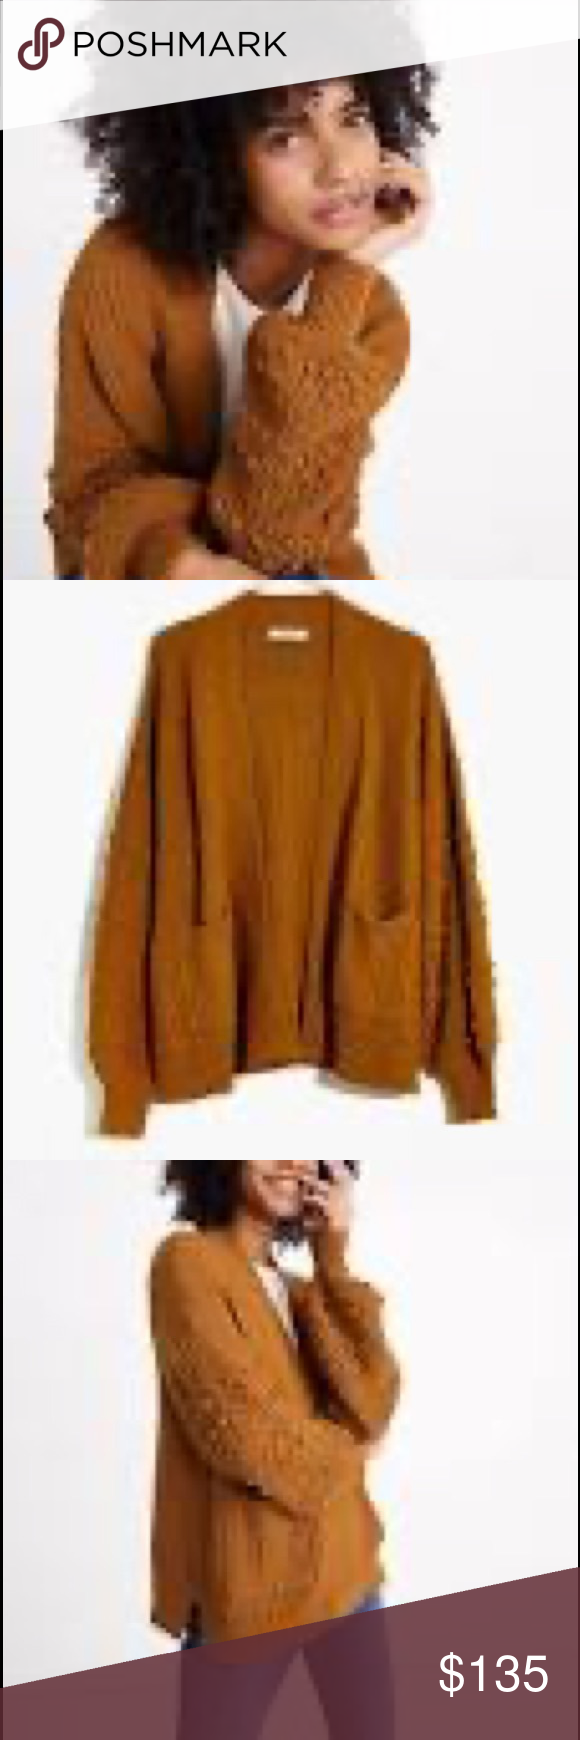 Madewell Bobble Cardigan No trade. Price is firm. Color